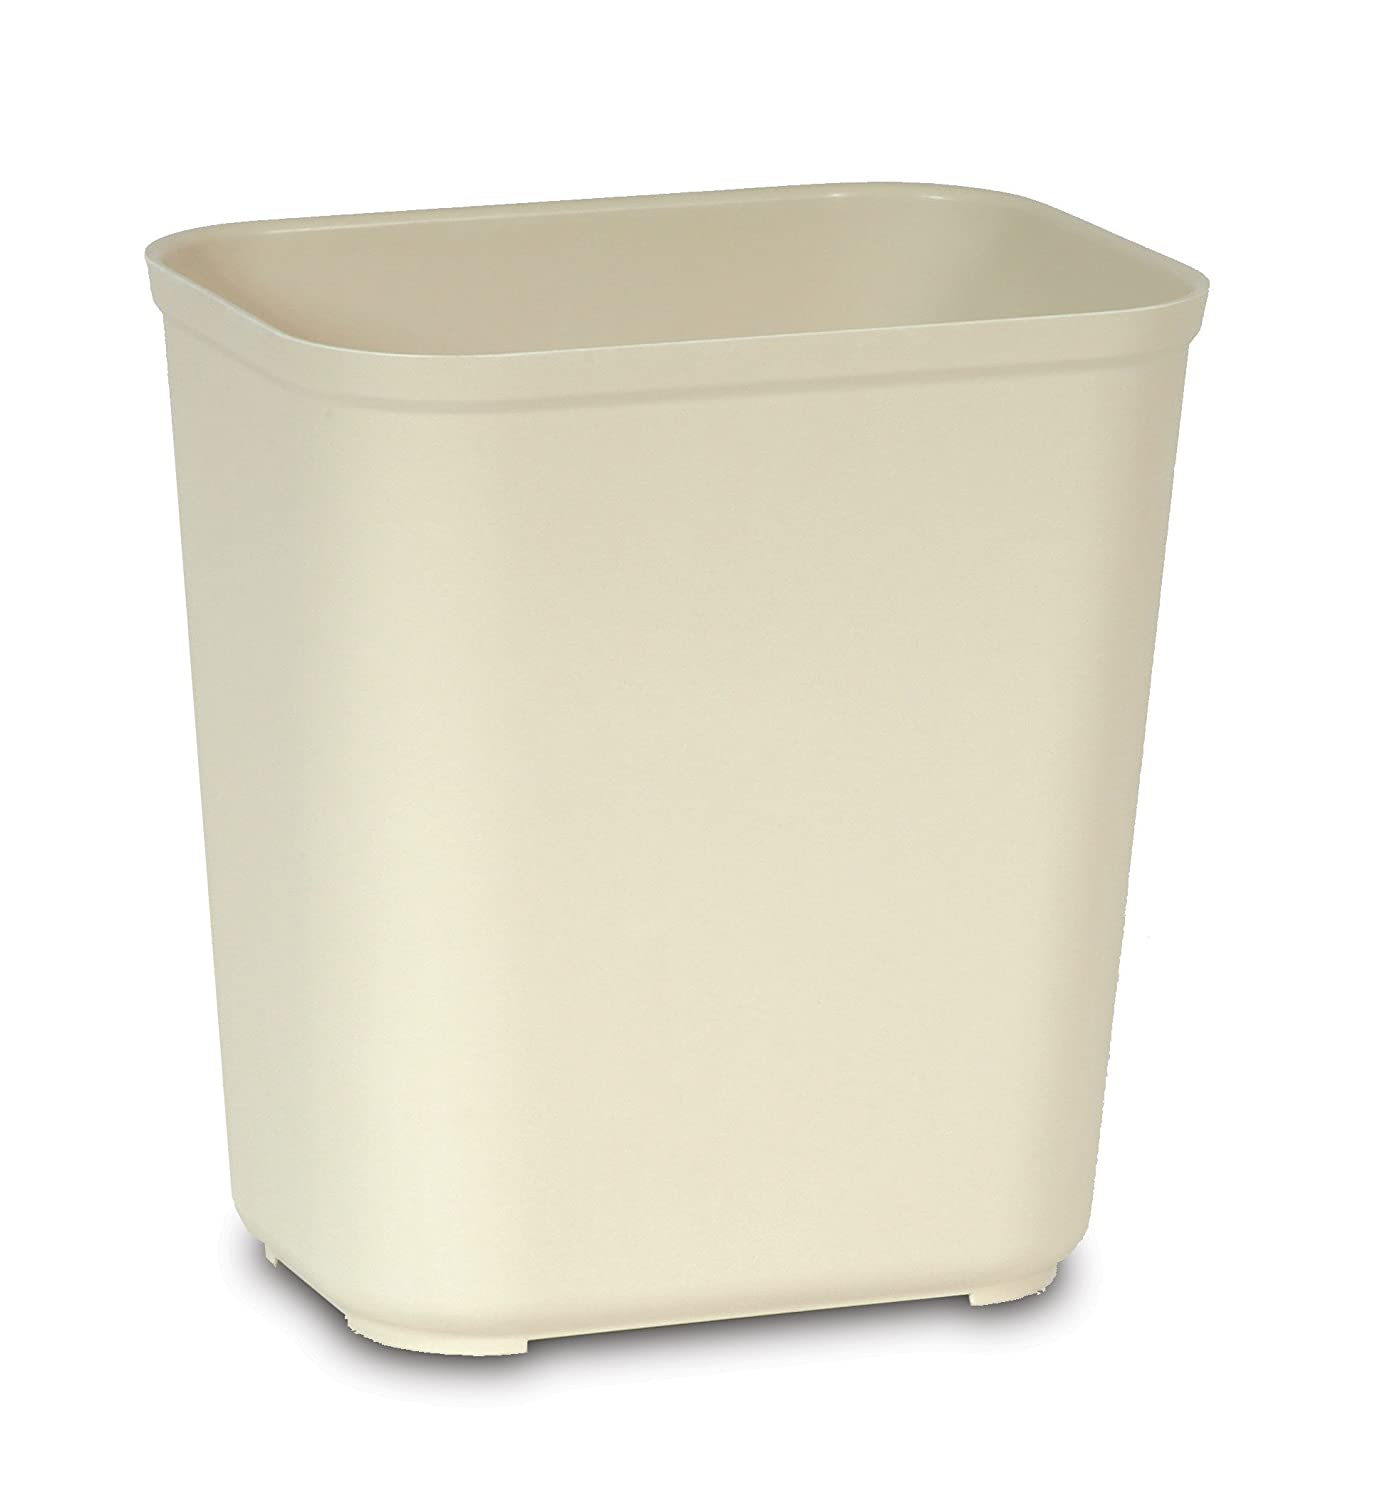 Rubbermaid Commercial Products FG254300BEIG Wastebasket, 28 quart, UL